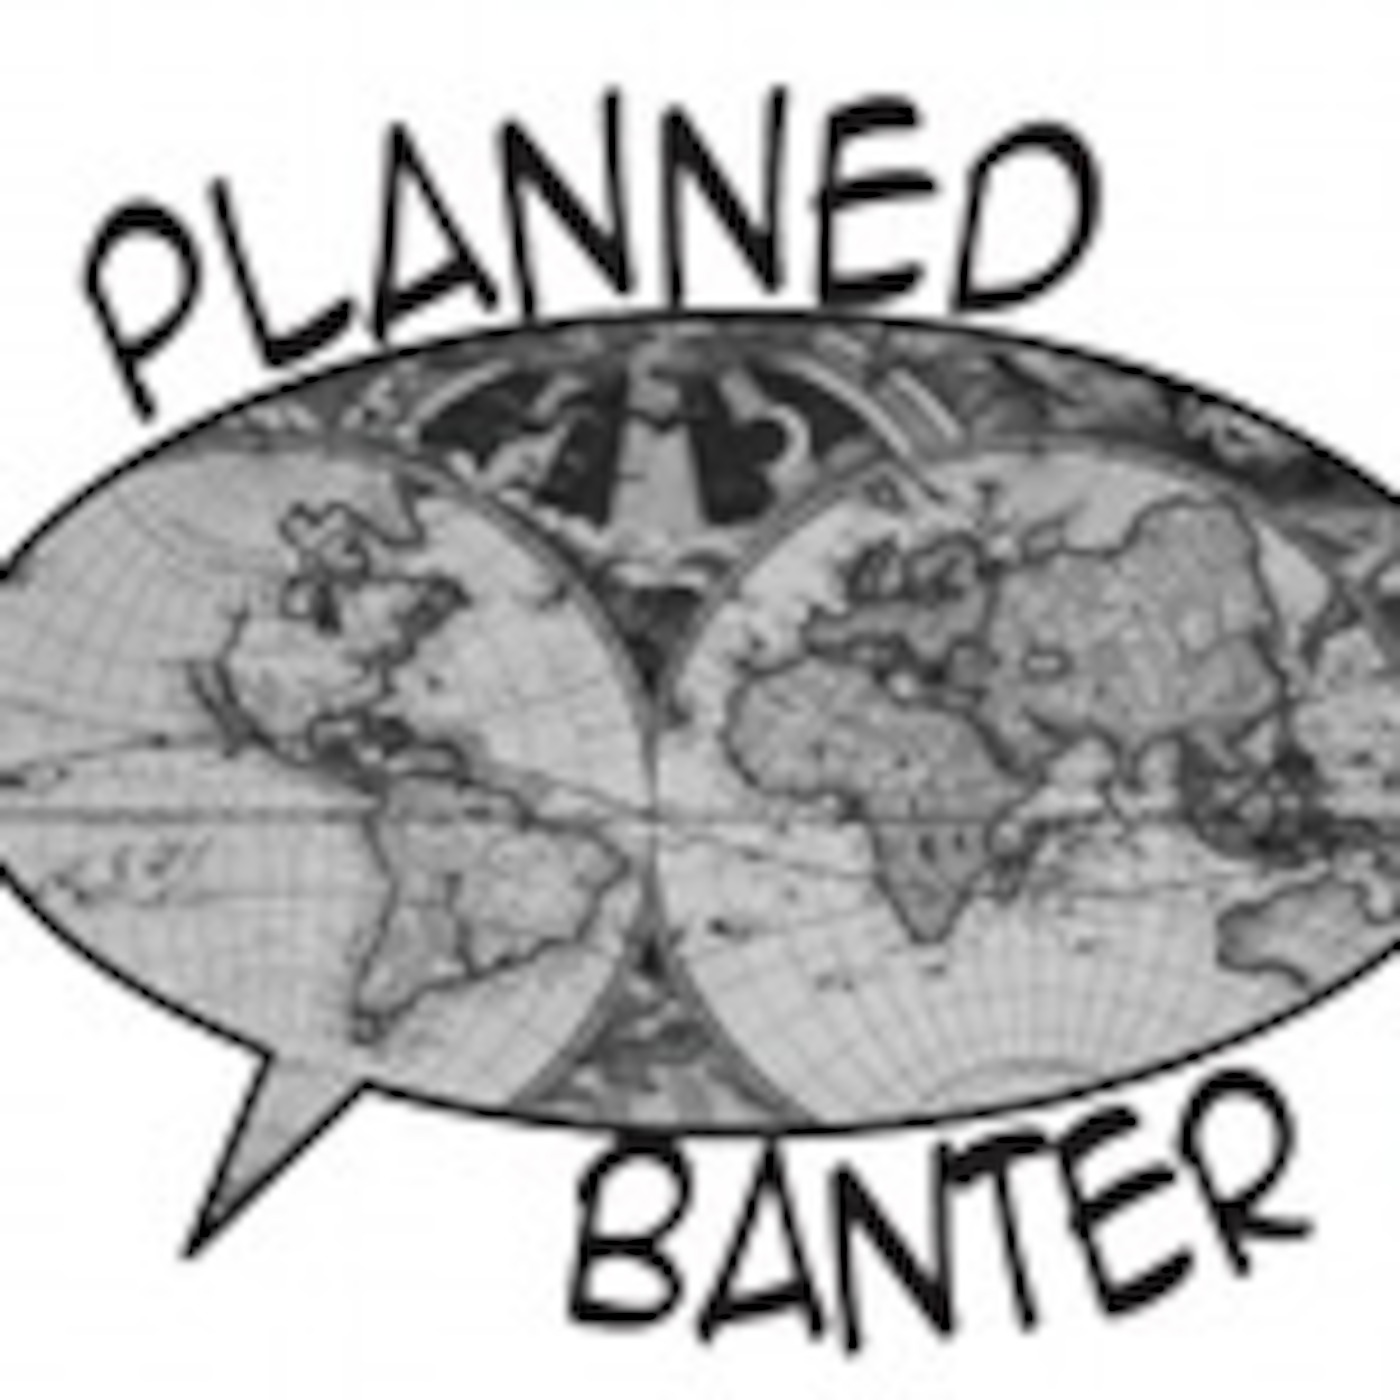 Planned Banter